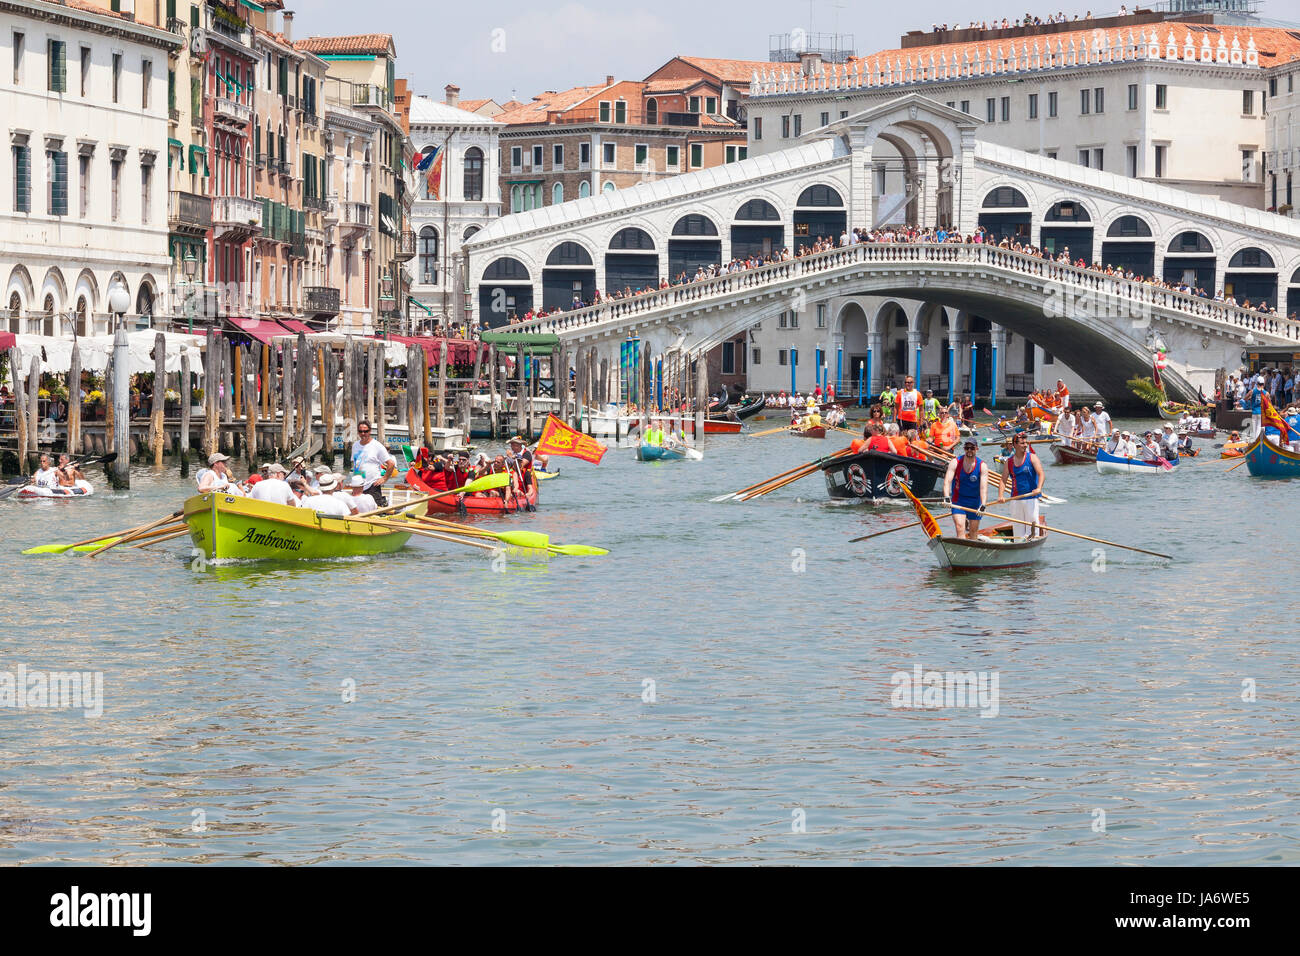 Venice, Veneto, Italy, 4th June 2017. Colorful assortment of traditional rowing boats passing under the Rialto Bridge - Stock Image